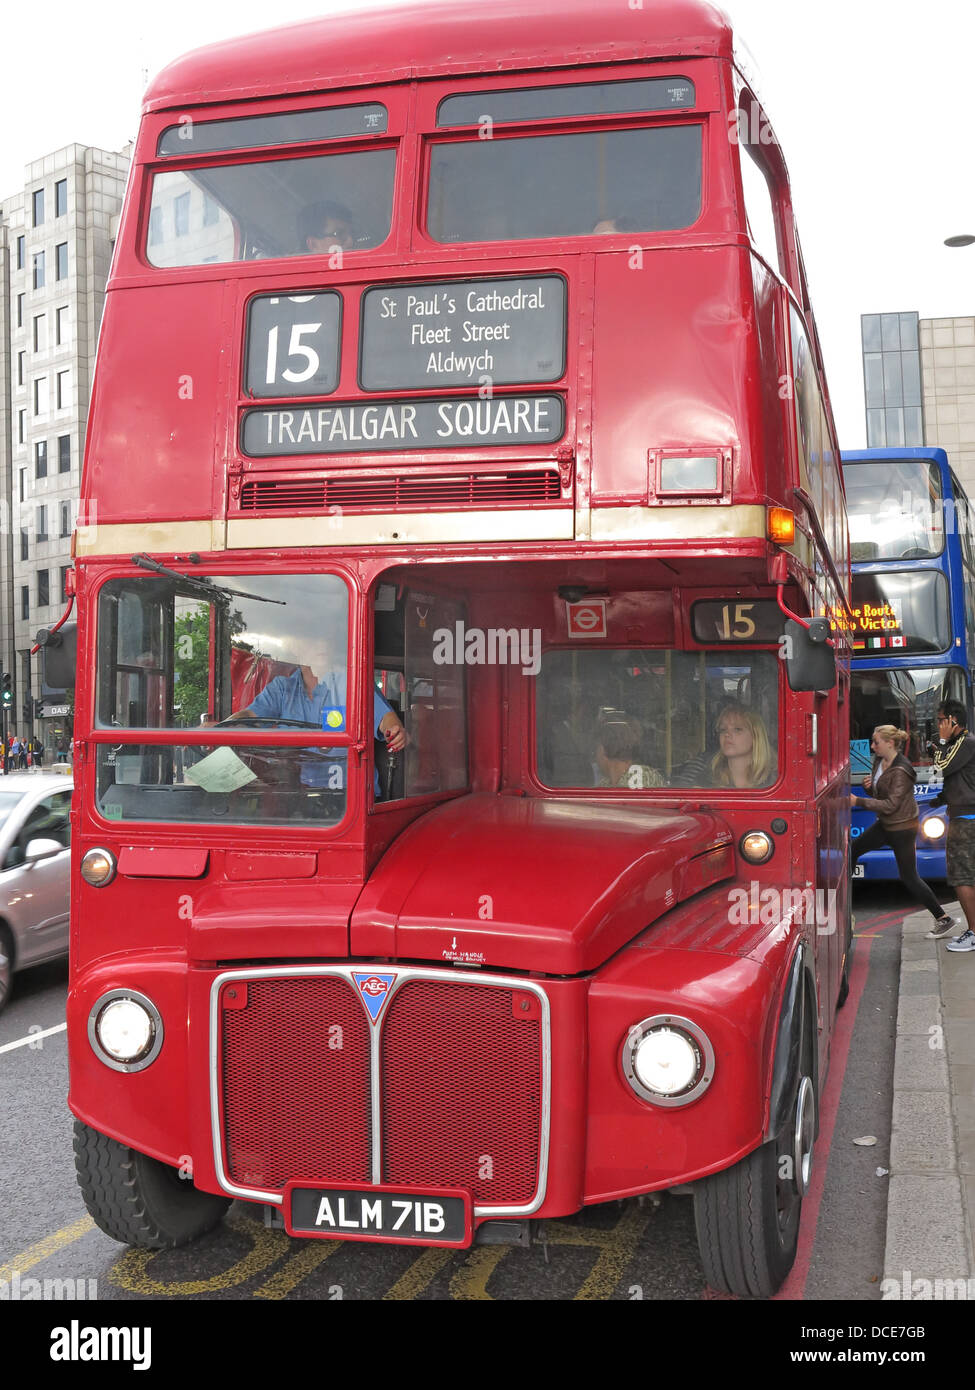 ALM71B,ALM,71B,classic,city,transports,15,number,no15,traditional,old,fashioned,ourist,travel,travellers,sightsee,sightseeing,sightseers,tower,hill,of,England,UK,united,kingdom,europe,route,st,pauls,cathedral,route15,TFL,for,double,decker,double-decker,heritage,route,vehicle,Transport,AEC,LT,RM,gotonysmith,Pauls,doubledecker,deck,upstairs,top,vehicles,routes,omnibus,heritageroutes,Stagecoach,company,services,between,Trafalgar,Square,and,Tower,Hill,ALM71B,ALM,71B,Buy Pictures of,Buy Images Of